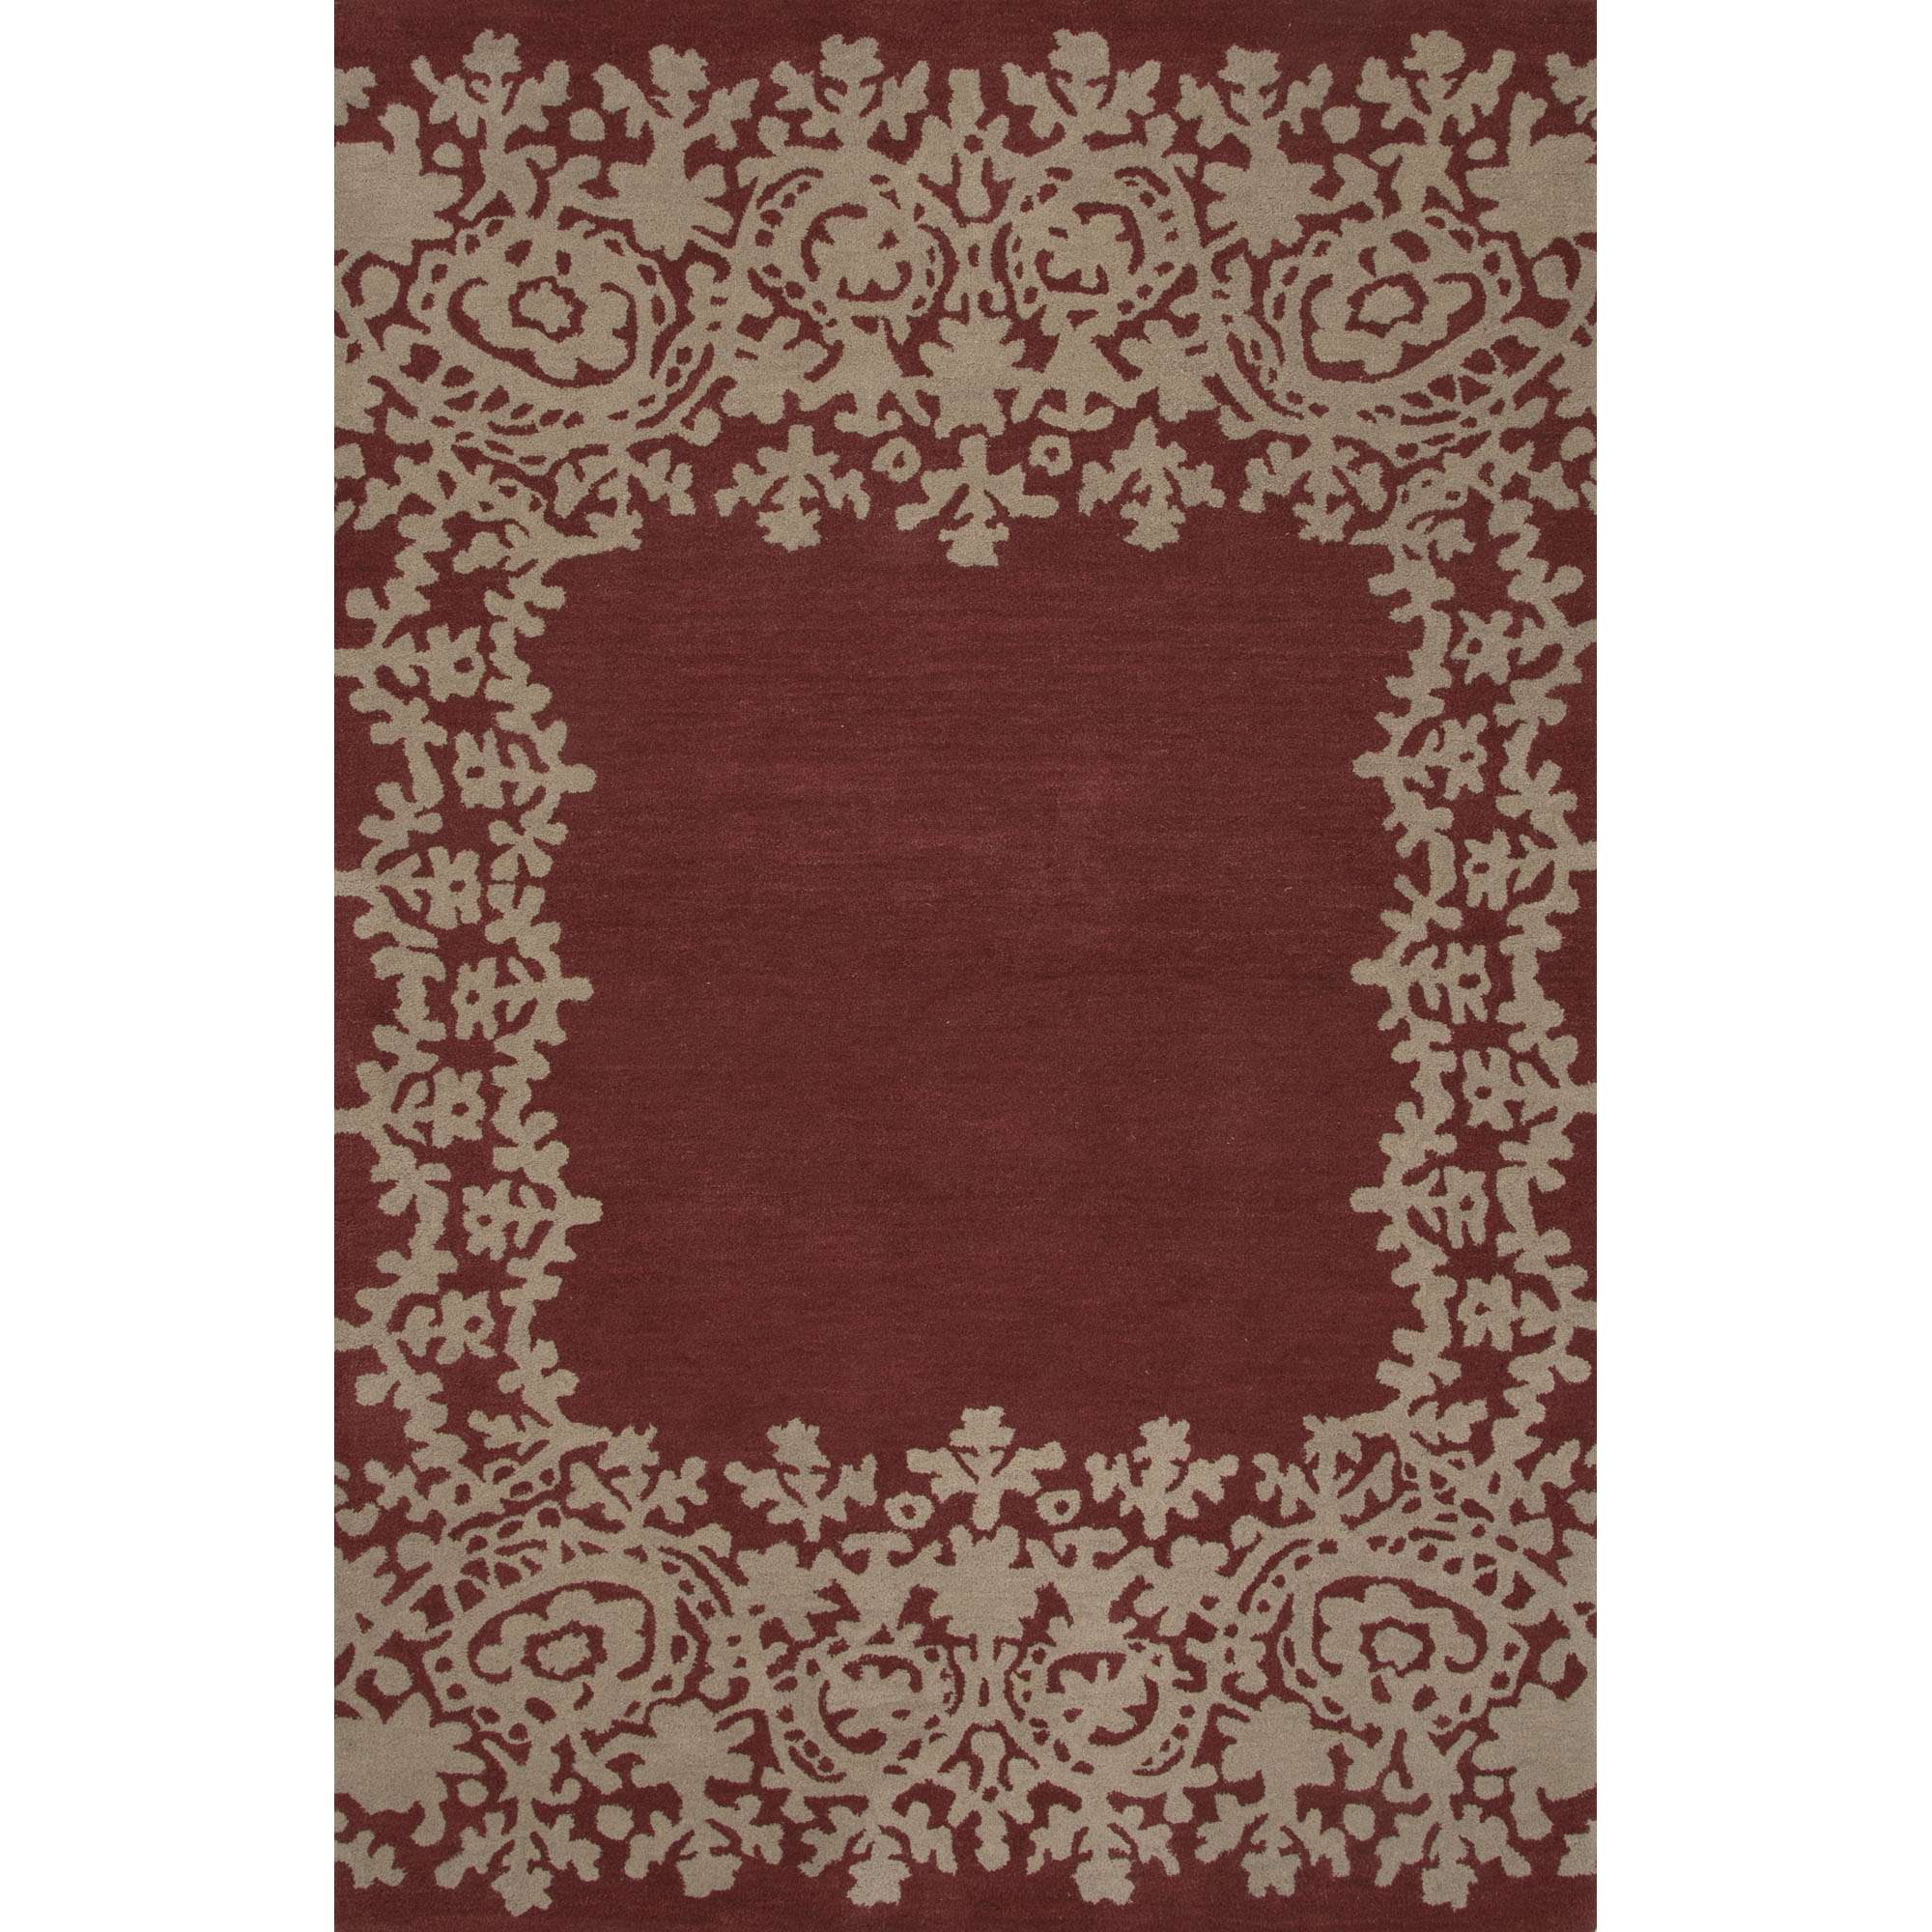 Traditions Made Modern Tufted 2 x 3 Rug by JAIPUR Rugs at Malouf Furniture Co.